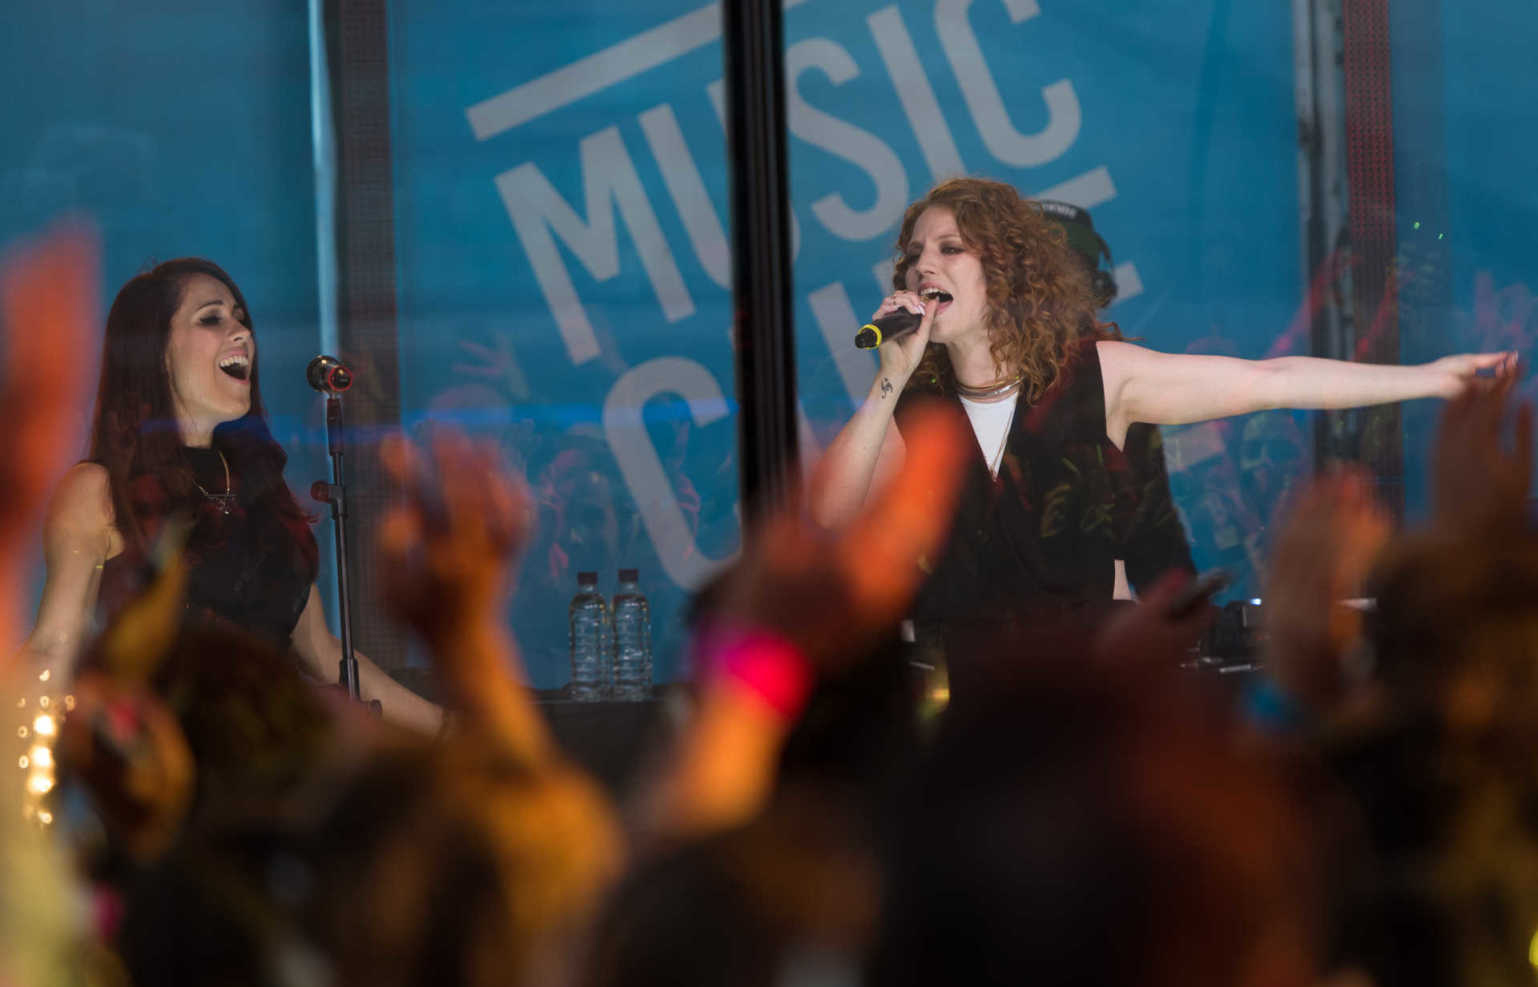 Jess Glynne Performs on stage during a launch for MUSIC CUBE in London